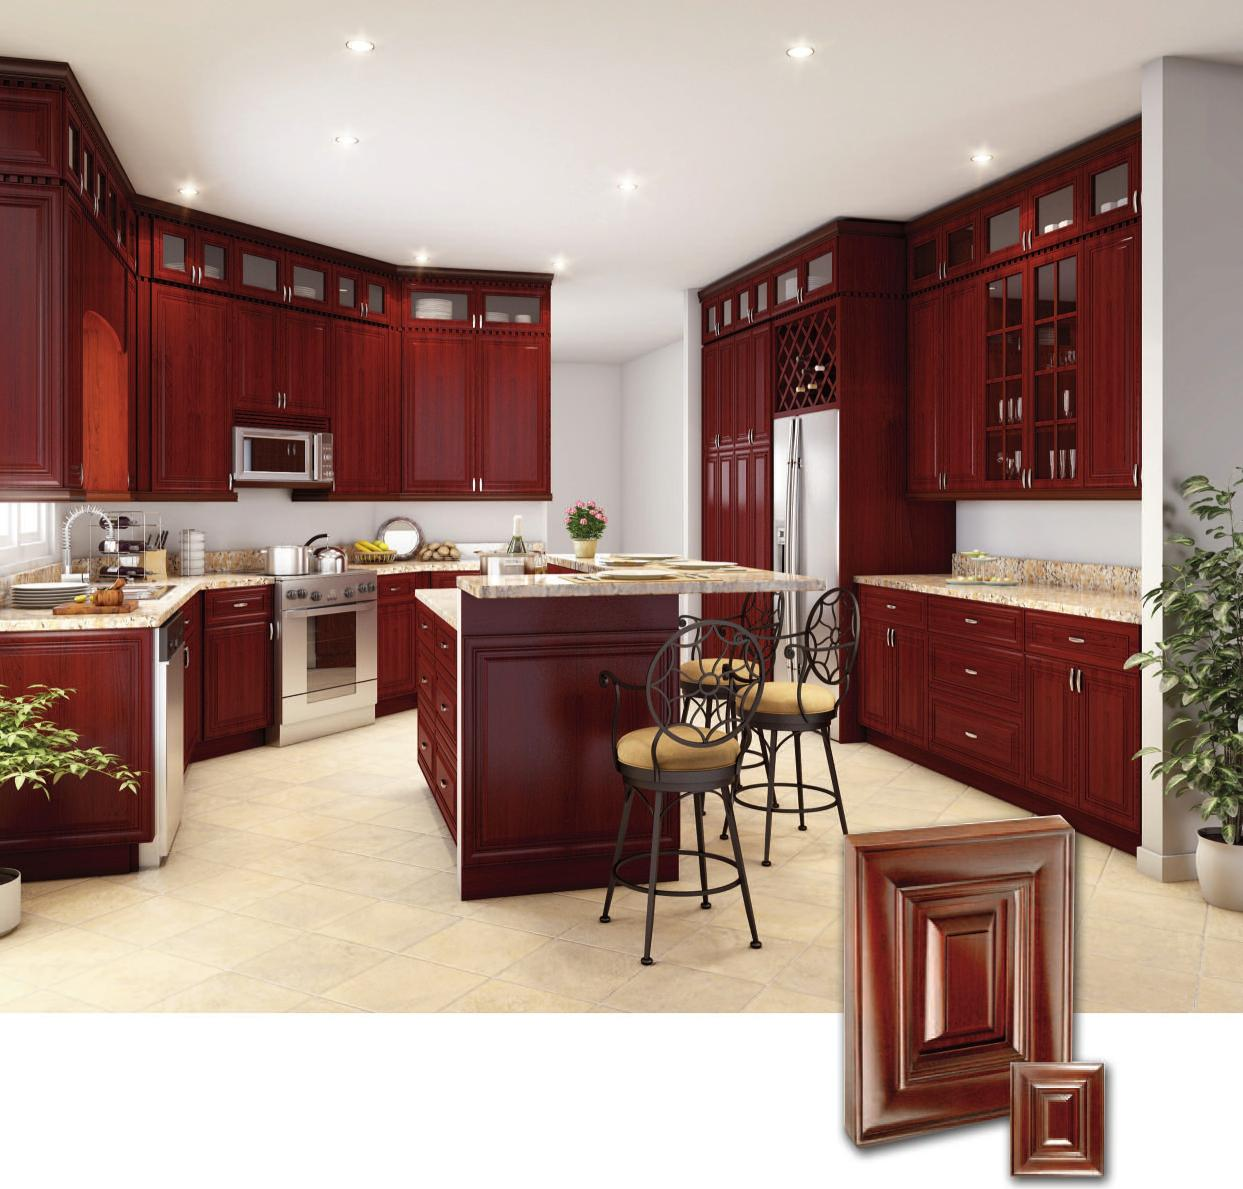 Kitchen Paint Colors With Cherry Cabinets: Cherry Wood Kitchen Cabinets Cherry Kitchen Cabinets Ideas